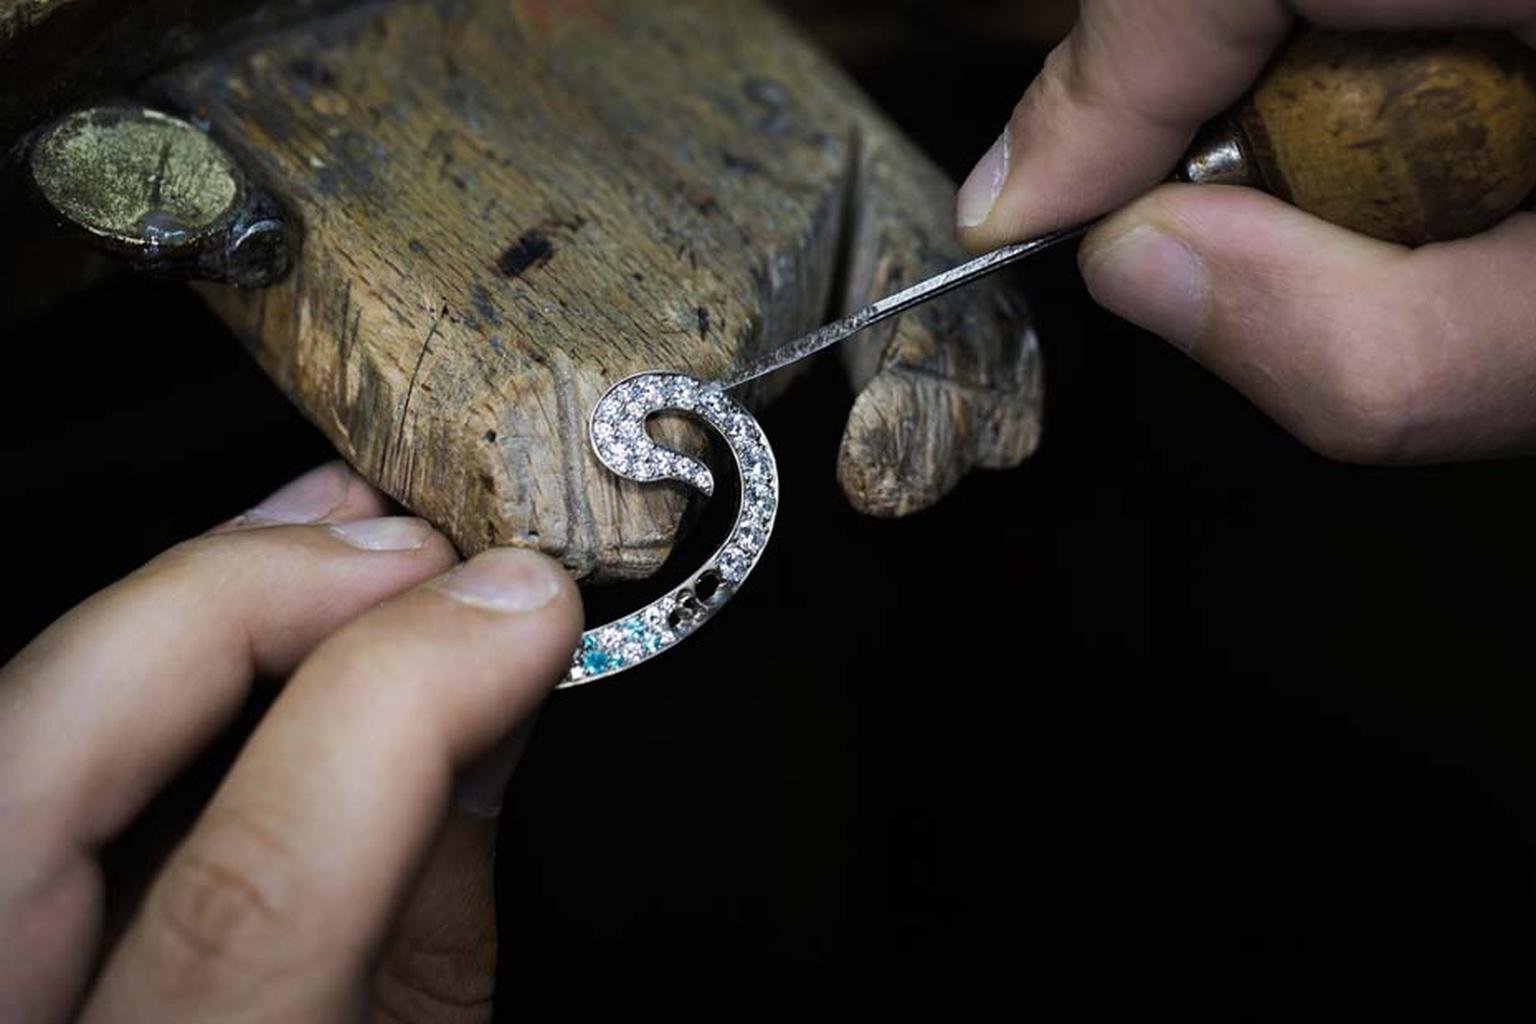 Highly specialised jewellers at Van Cleef & Arpels set the diamonds and Paraiba-like tourmalines in the white gold structure to simulate a spurt of water.